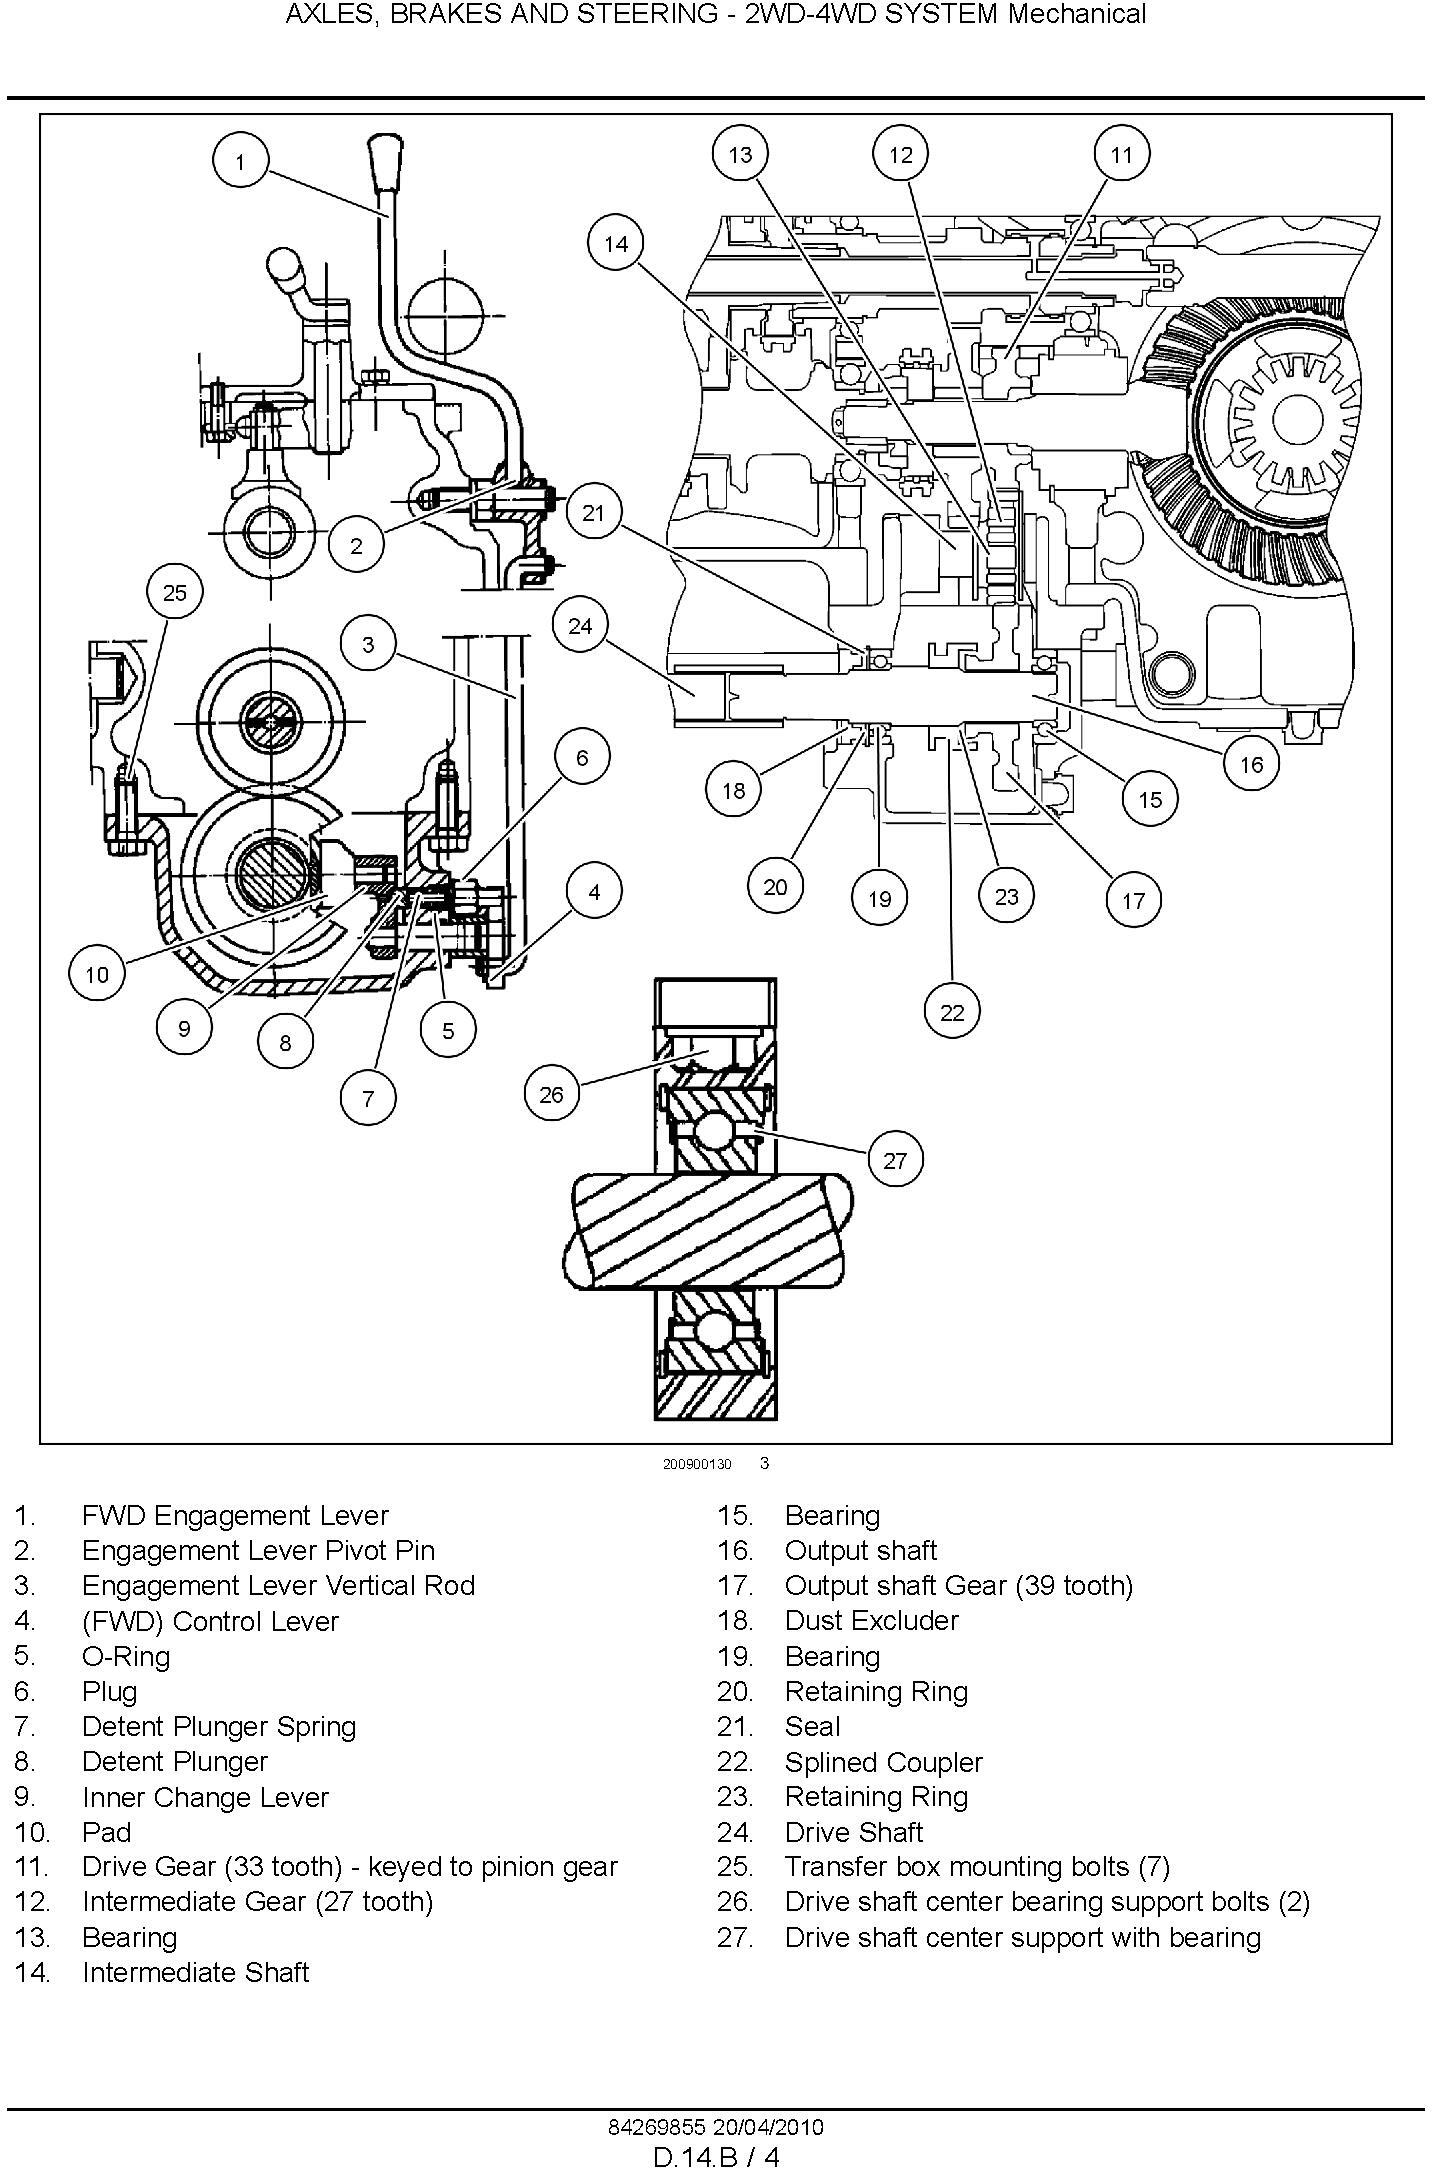 New Holland Workmaster 75, Workmaster 65 Tractor Complete Service Manual - 3